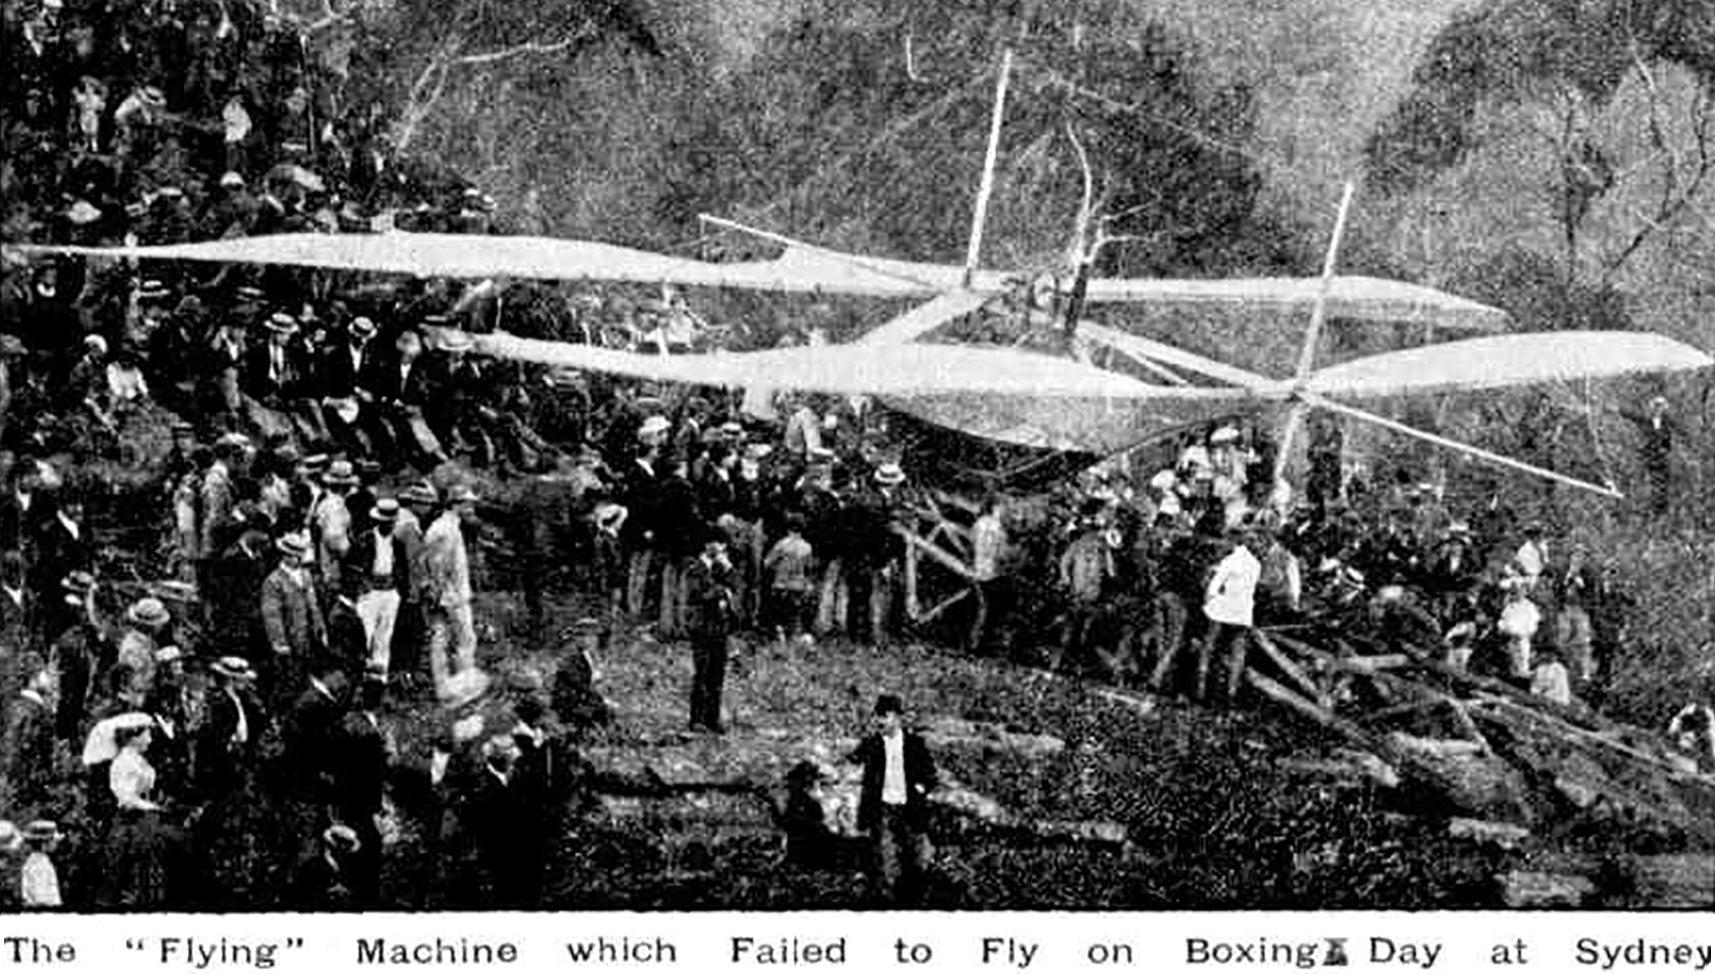 Captain Penfold takes off in a Hot Air Balloon at Clifton Gardens Mosman in 1914